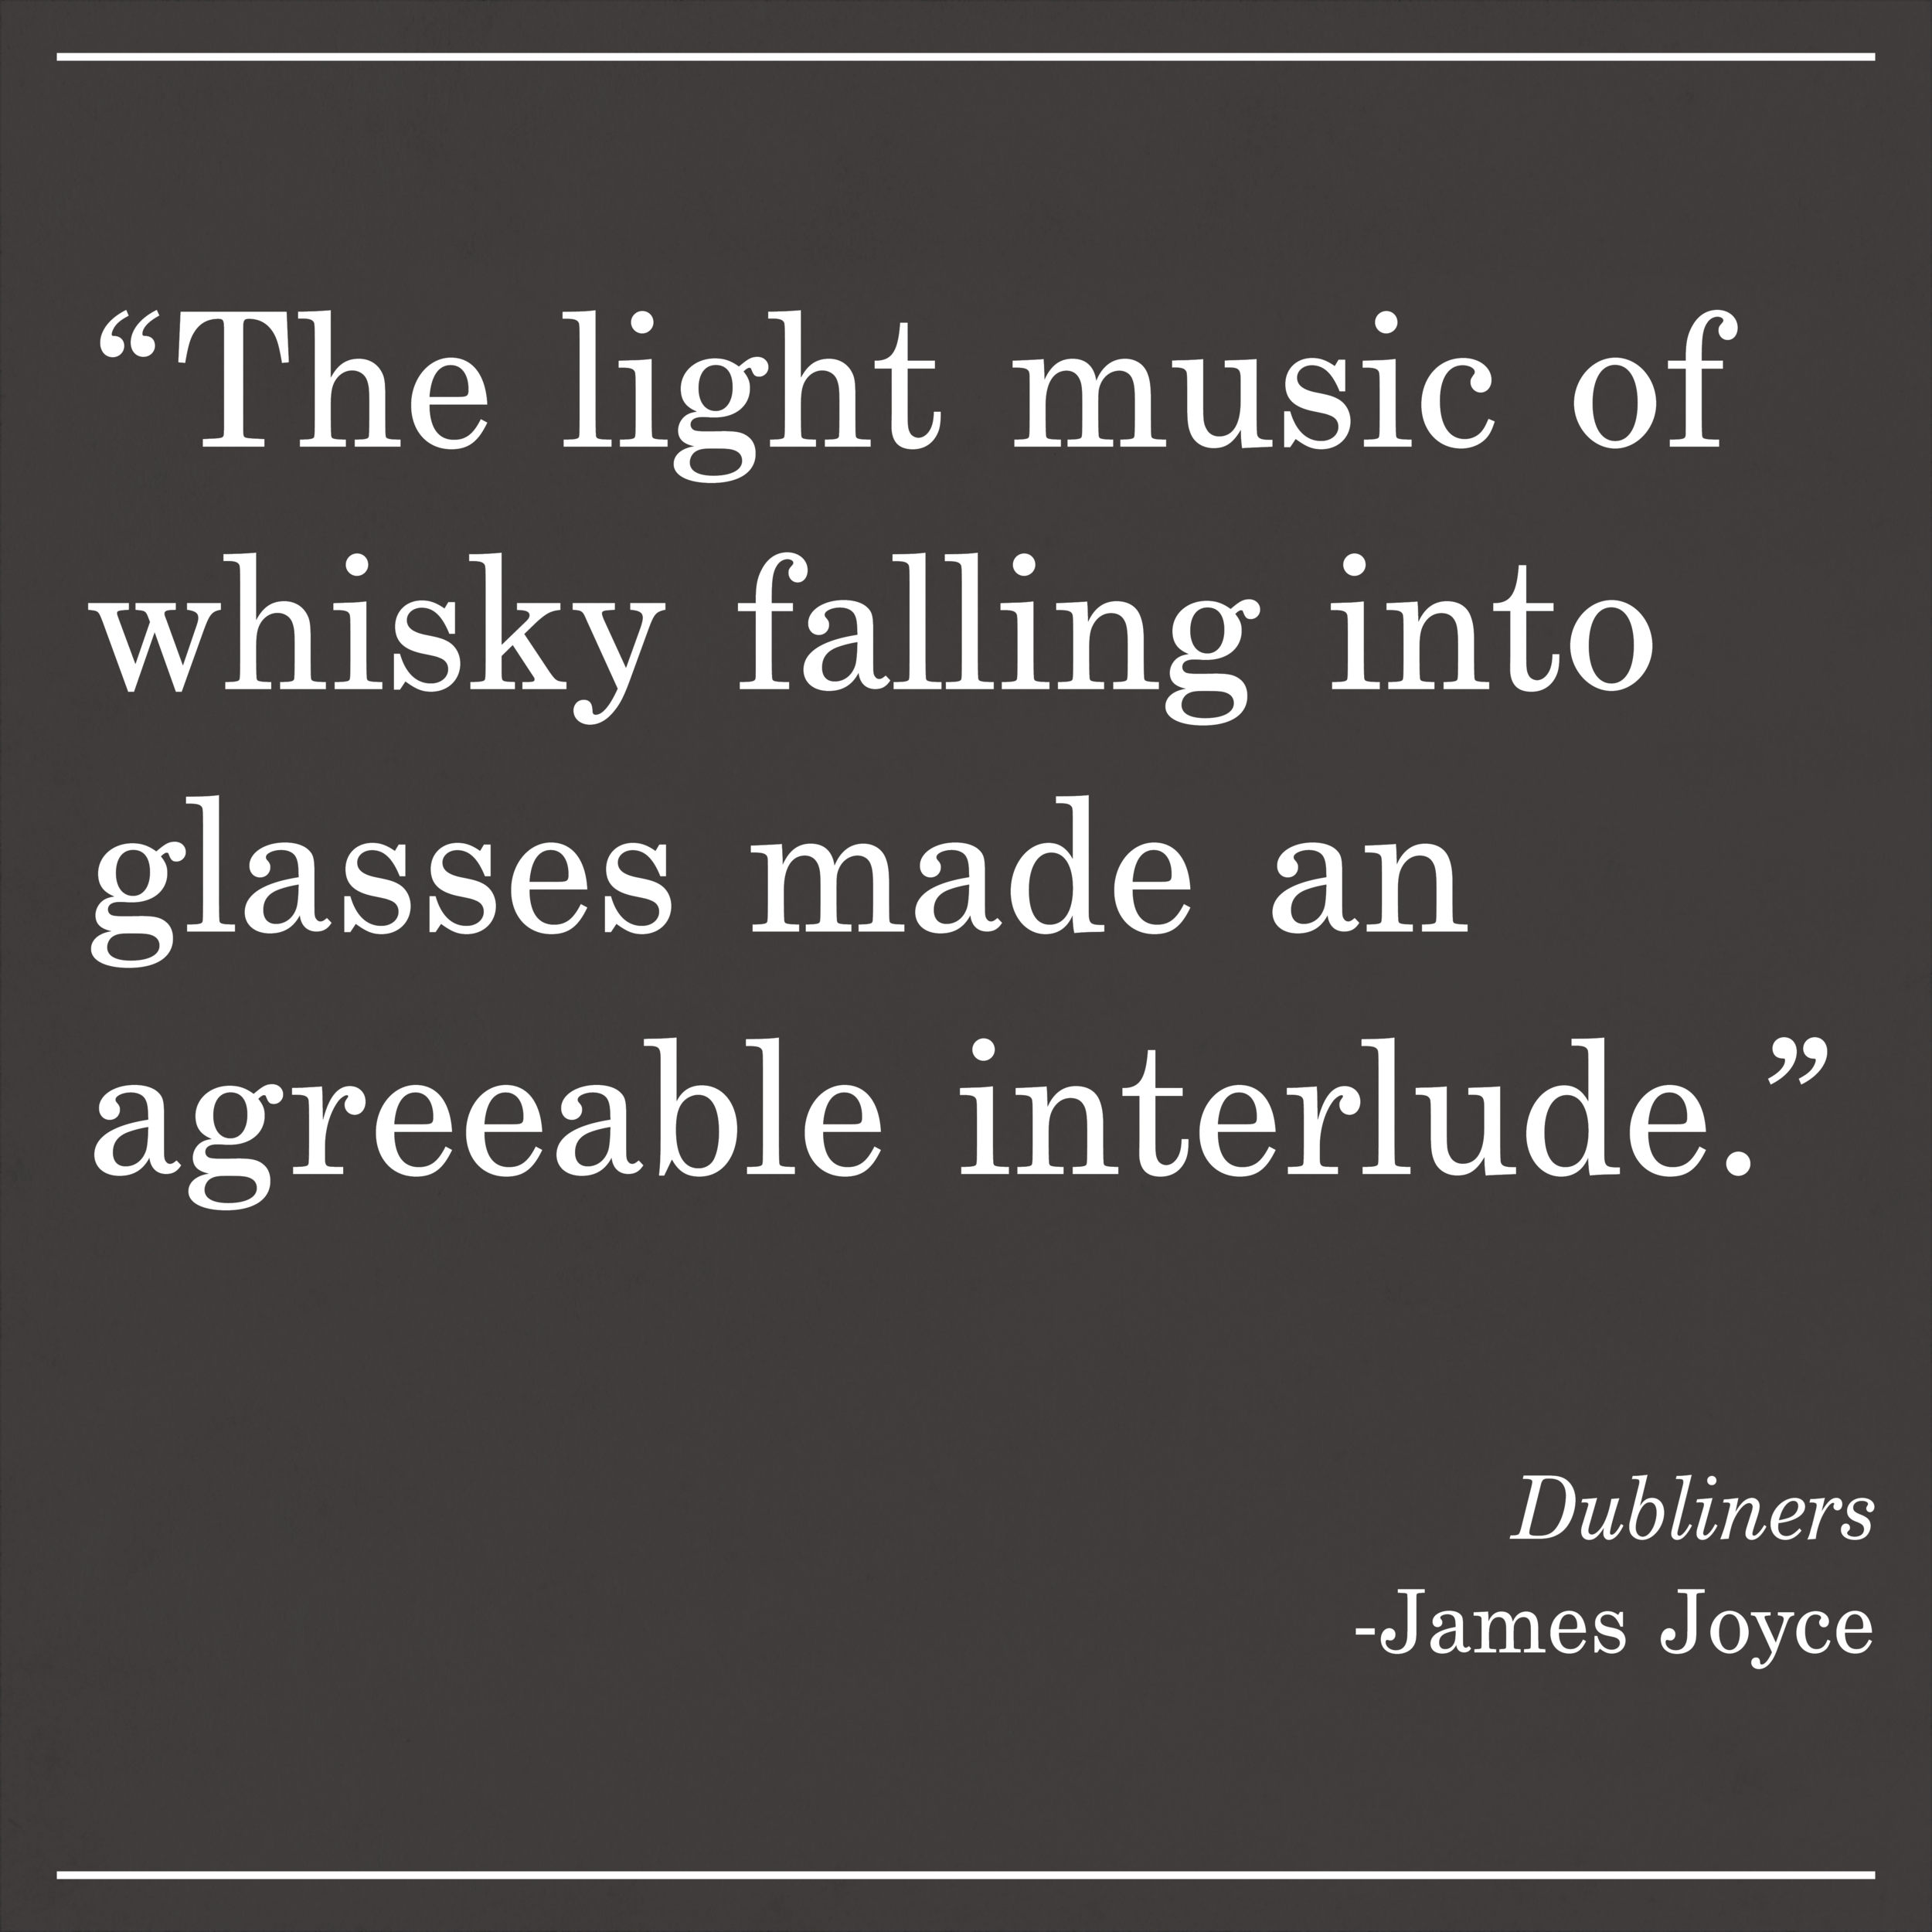 Daily Quote Dubliners by James Joyce